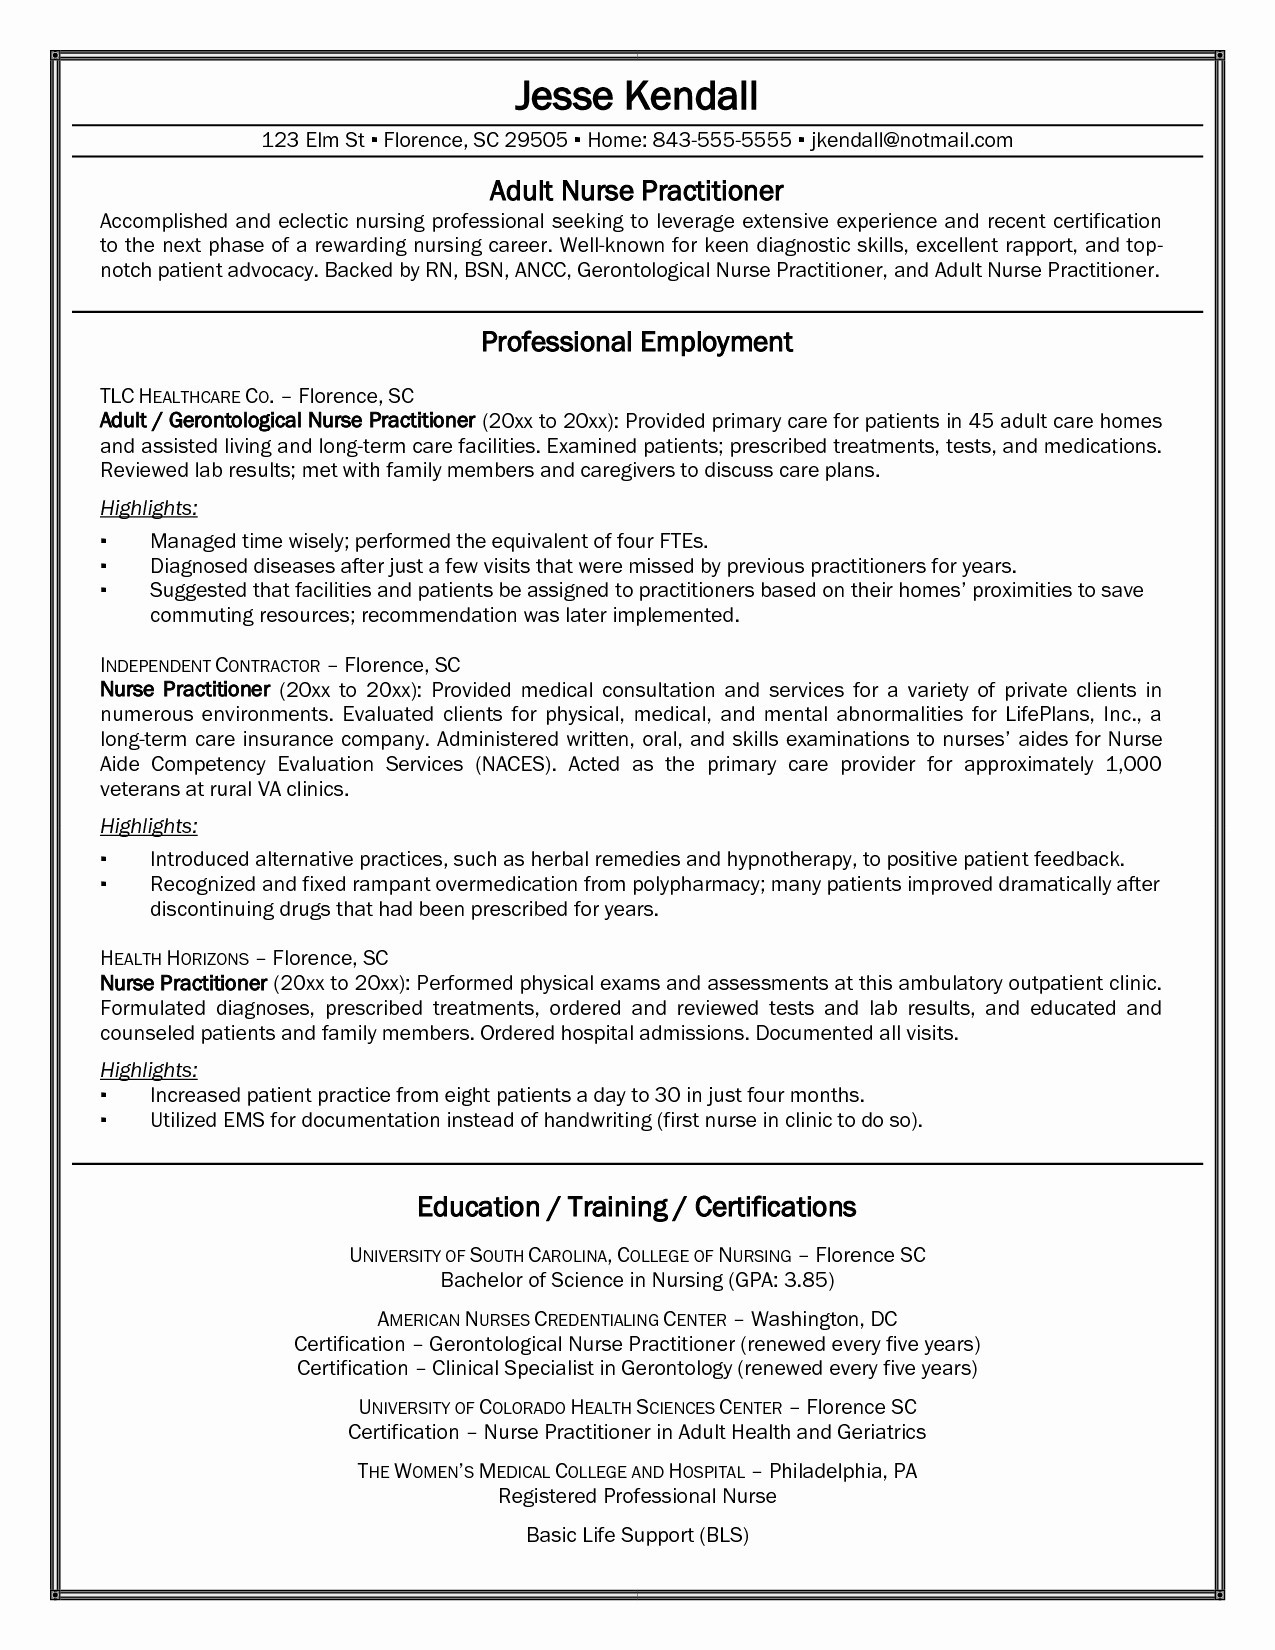 Nursing Resume format - Sample Nursing Resume Elegant Sample A Resume Inspirational New